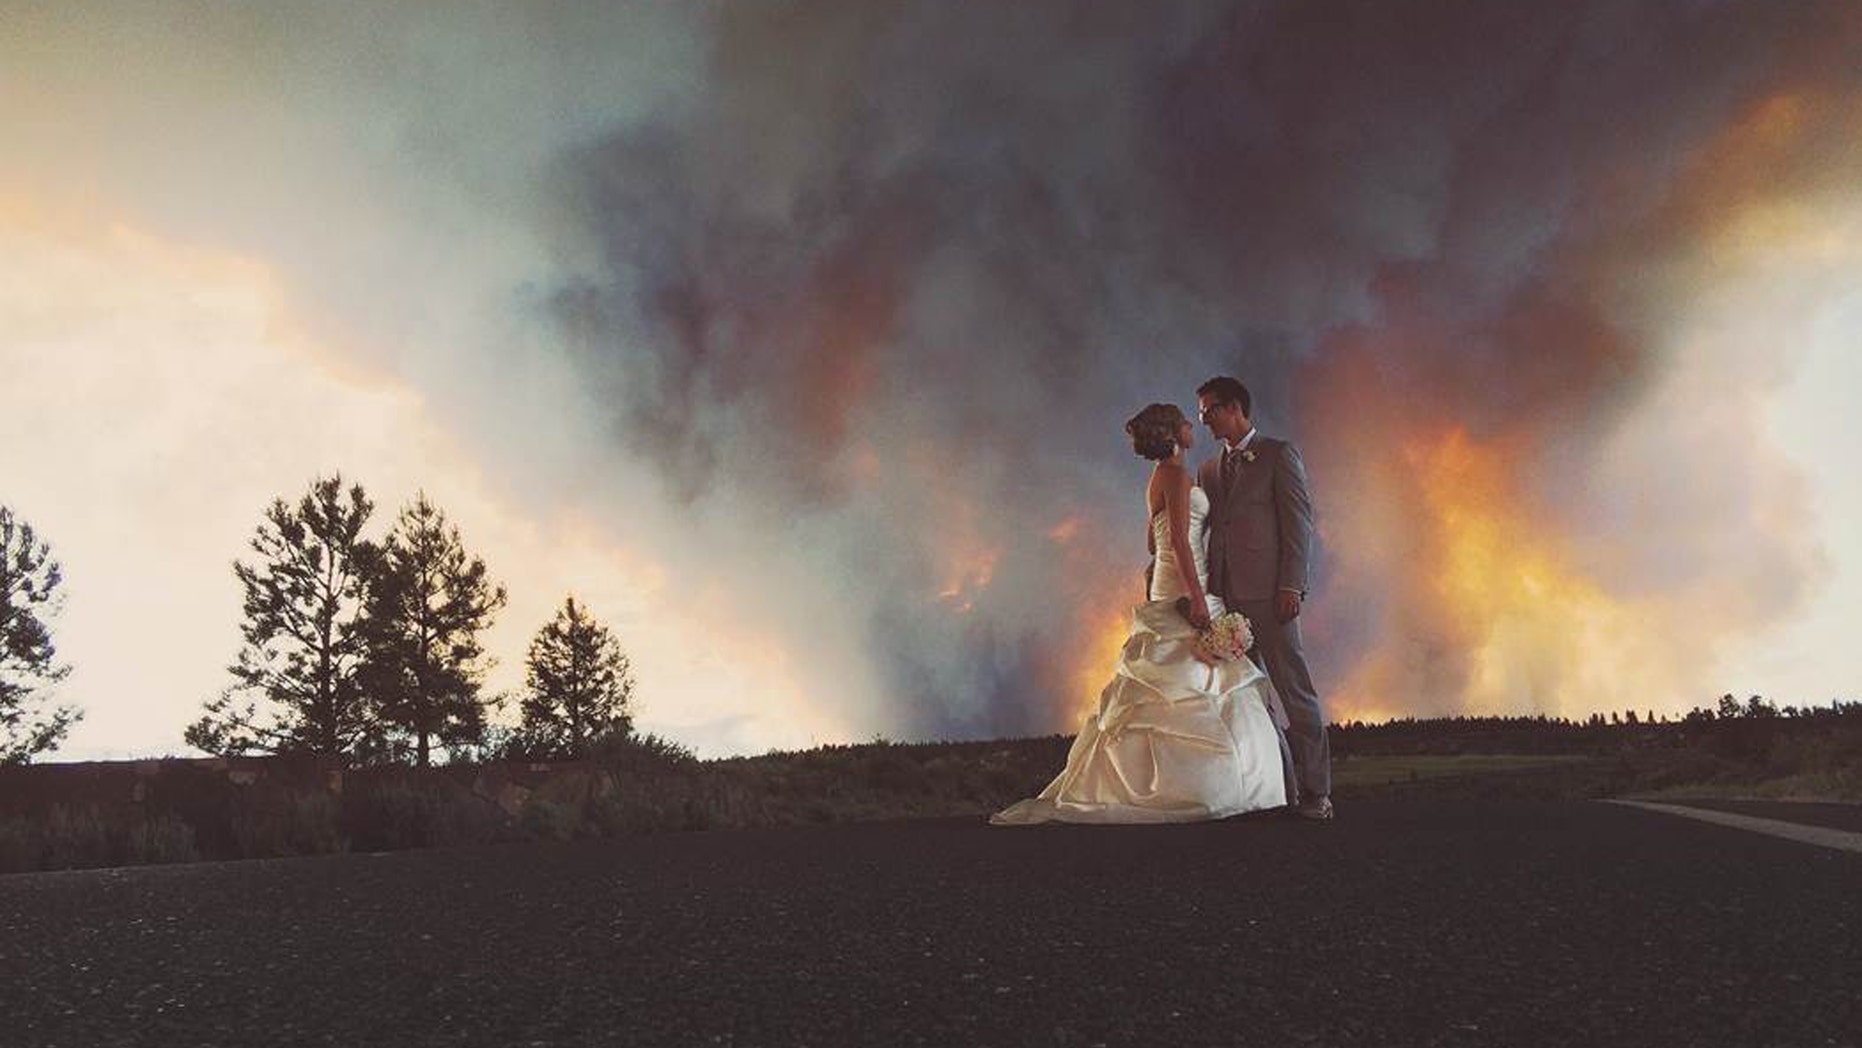 In this Saturday, June 7, 2014 photo provided by Josh Newton, newlyweds Michael Wolber and April Hartley pose for a picture near Bend, Ore., as a wildfire burns in the background. Because of the approaching fire, the minister conducted an abbreviated ceremony and the wedding party was evacuated to a downtown Bend park for the reception. (AP/Josh Newton)